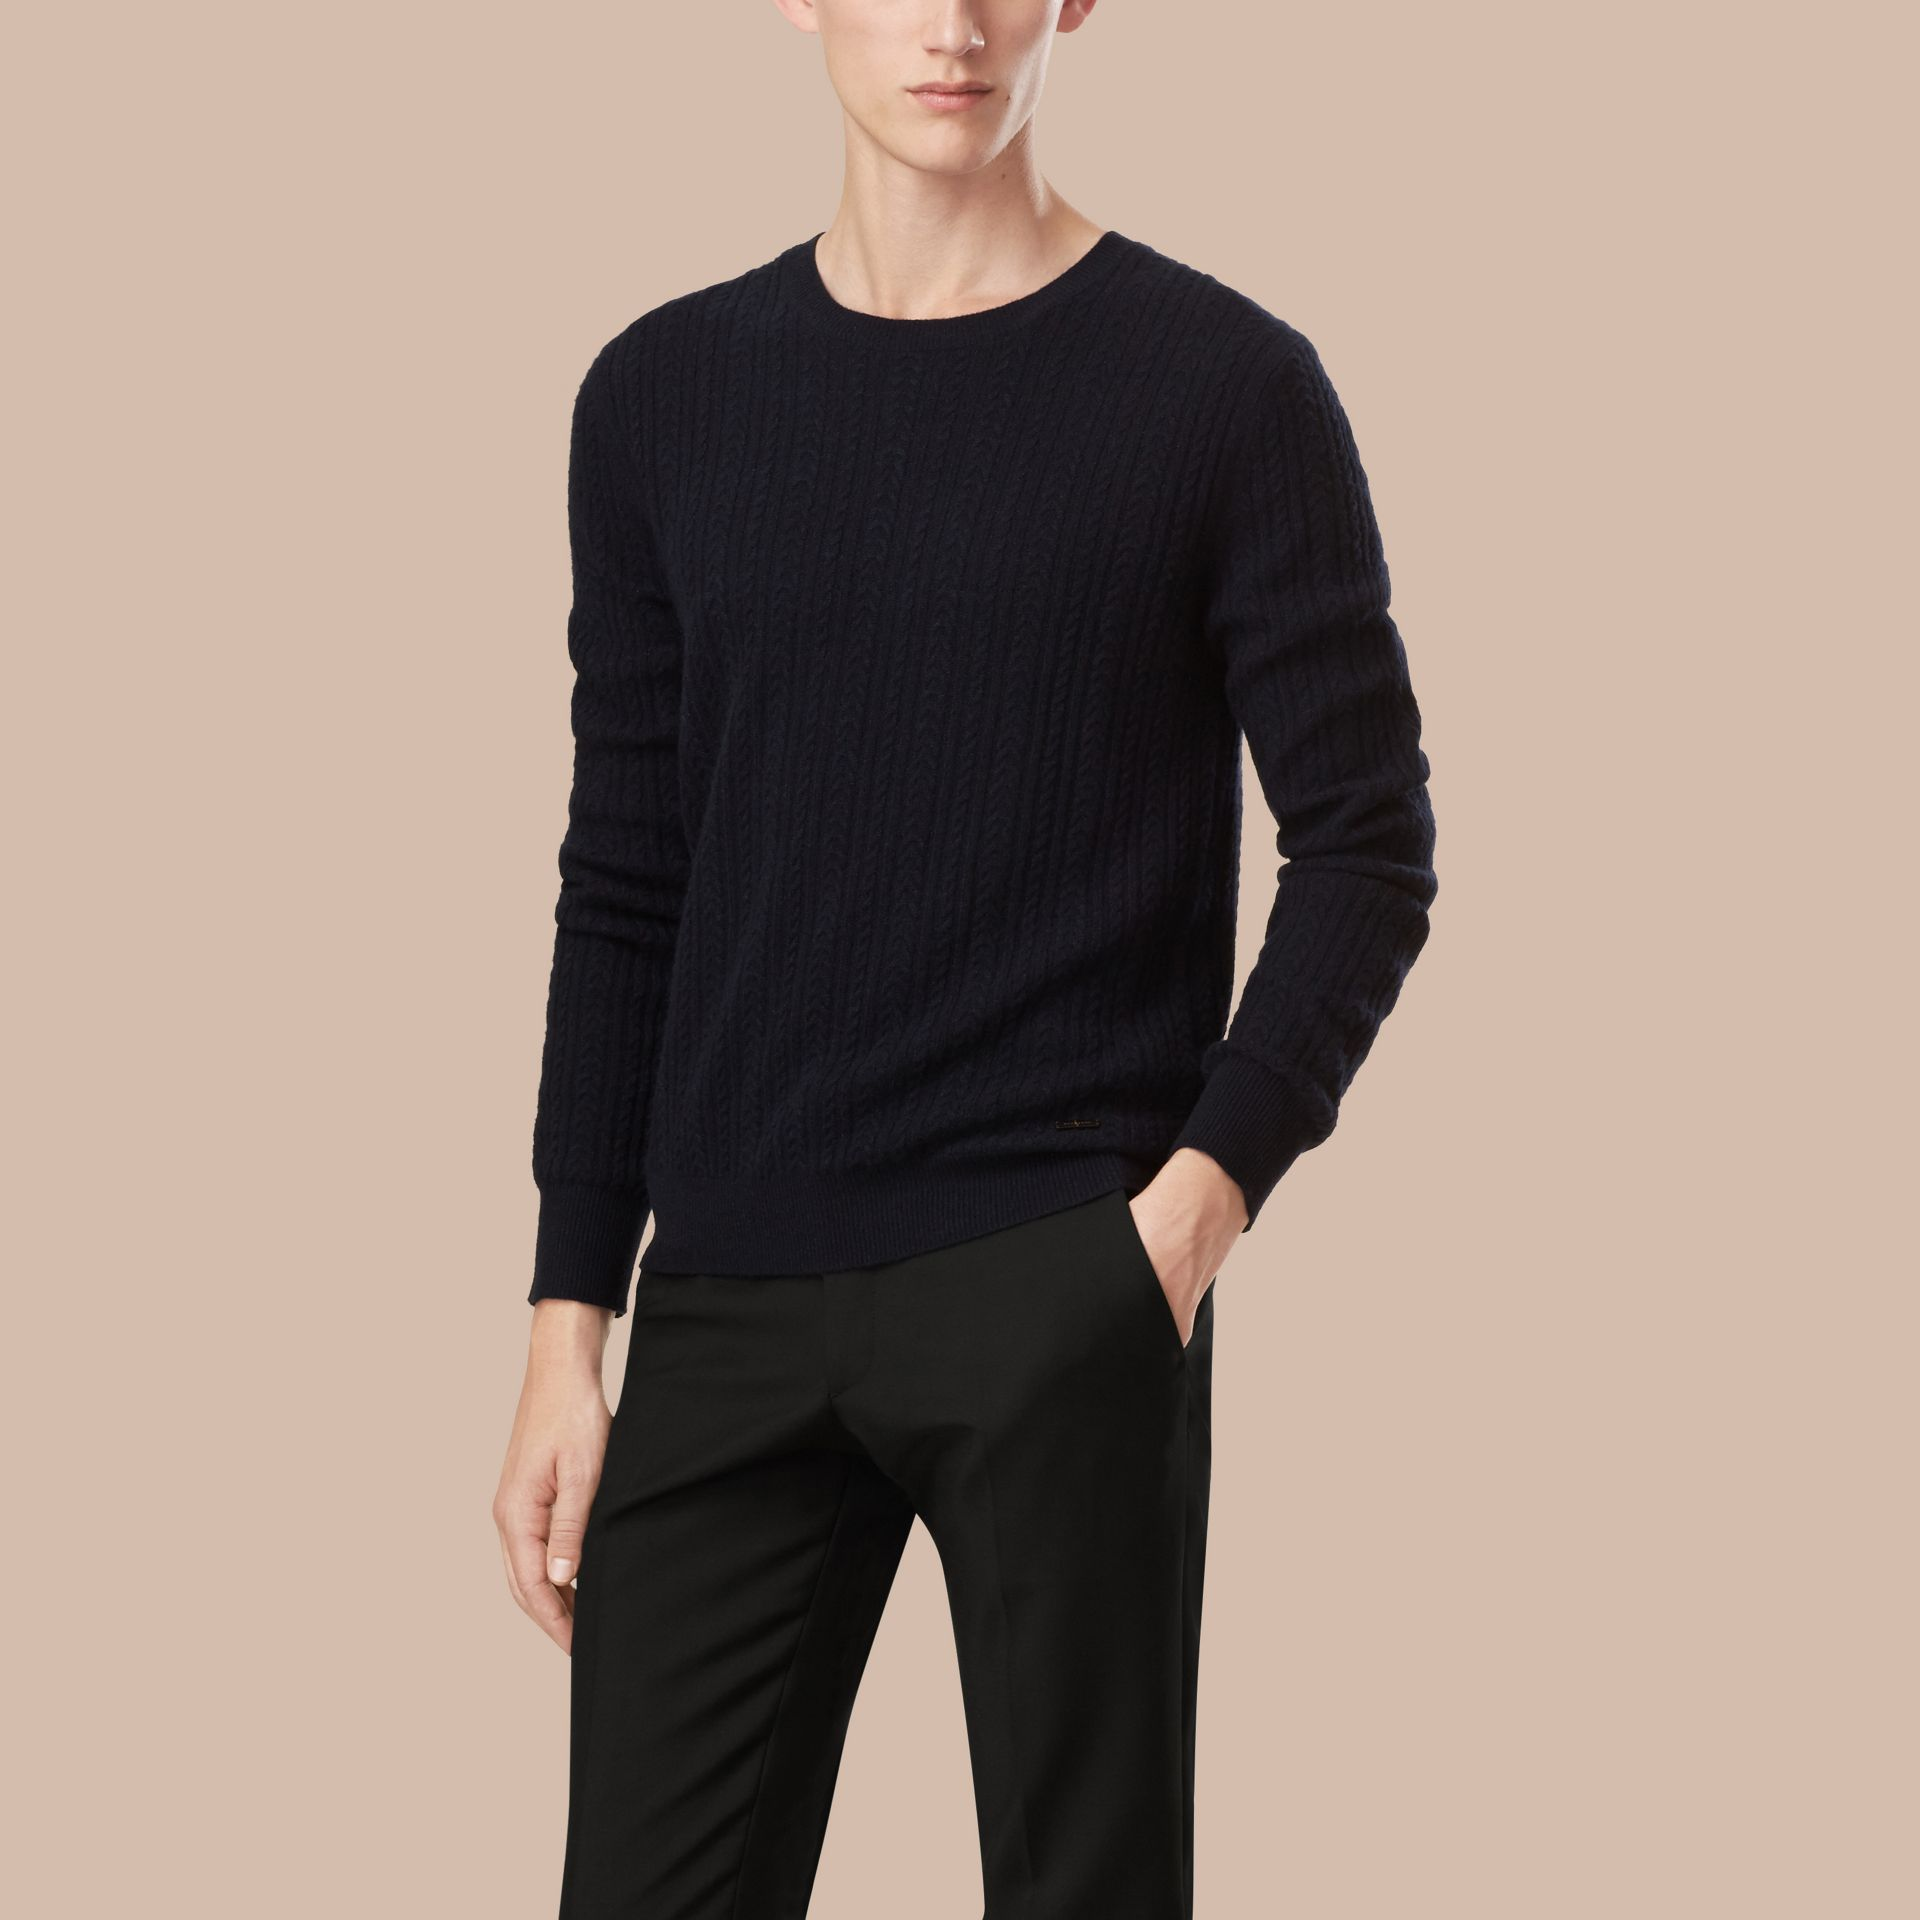 Navy Aran Knit Cashmere Sweater Navy - gallery image 3